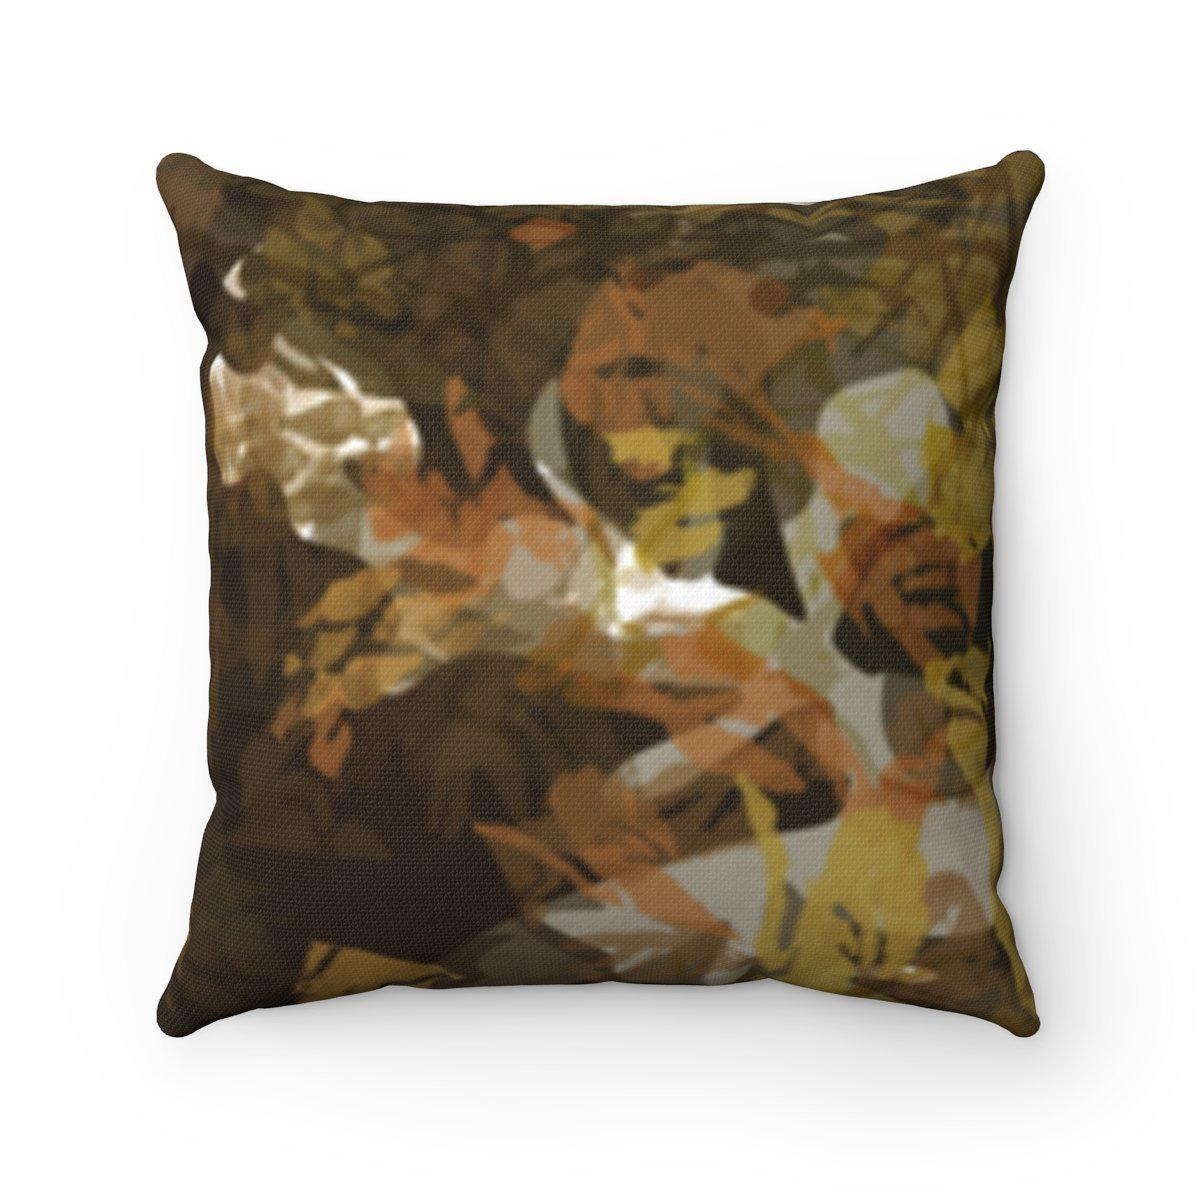 Maison d'Elite modern camouflage decorative cushion cover-Home Decor - Decorative Accents - Pillows & Throws - Decorative Pillows-Maison d'Elite-14x14-Très Elite